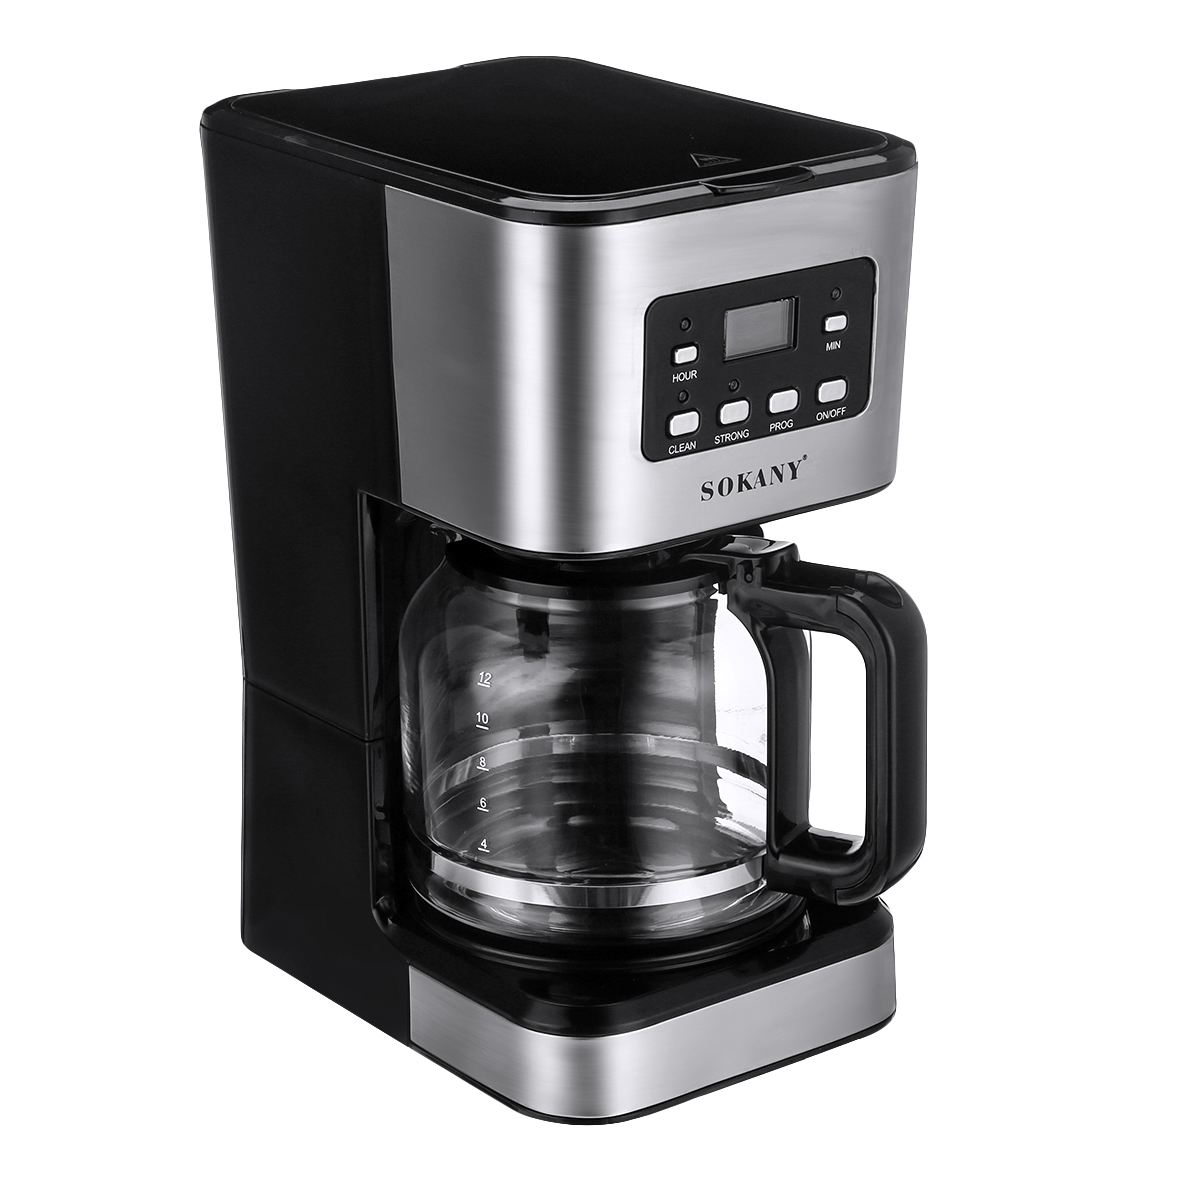 220V Coffee Maker 12 Cups 1.5L Semi-Automatic Espresso Making Machine Stainless Steel 11